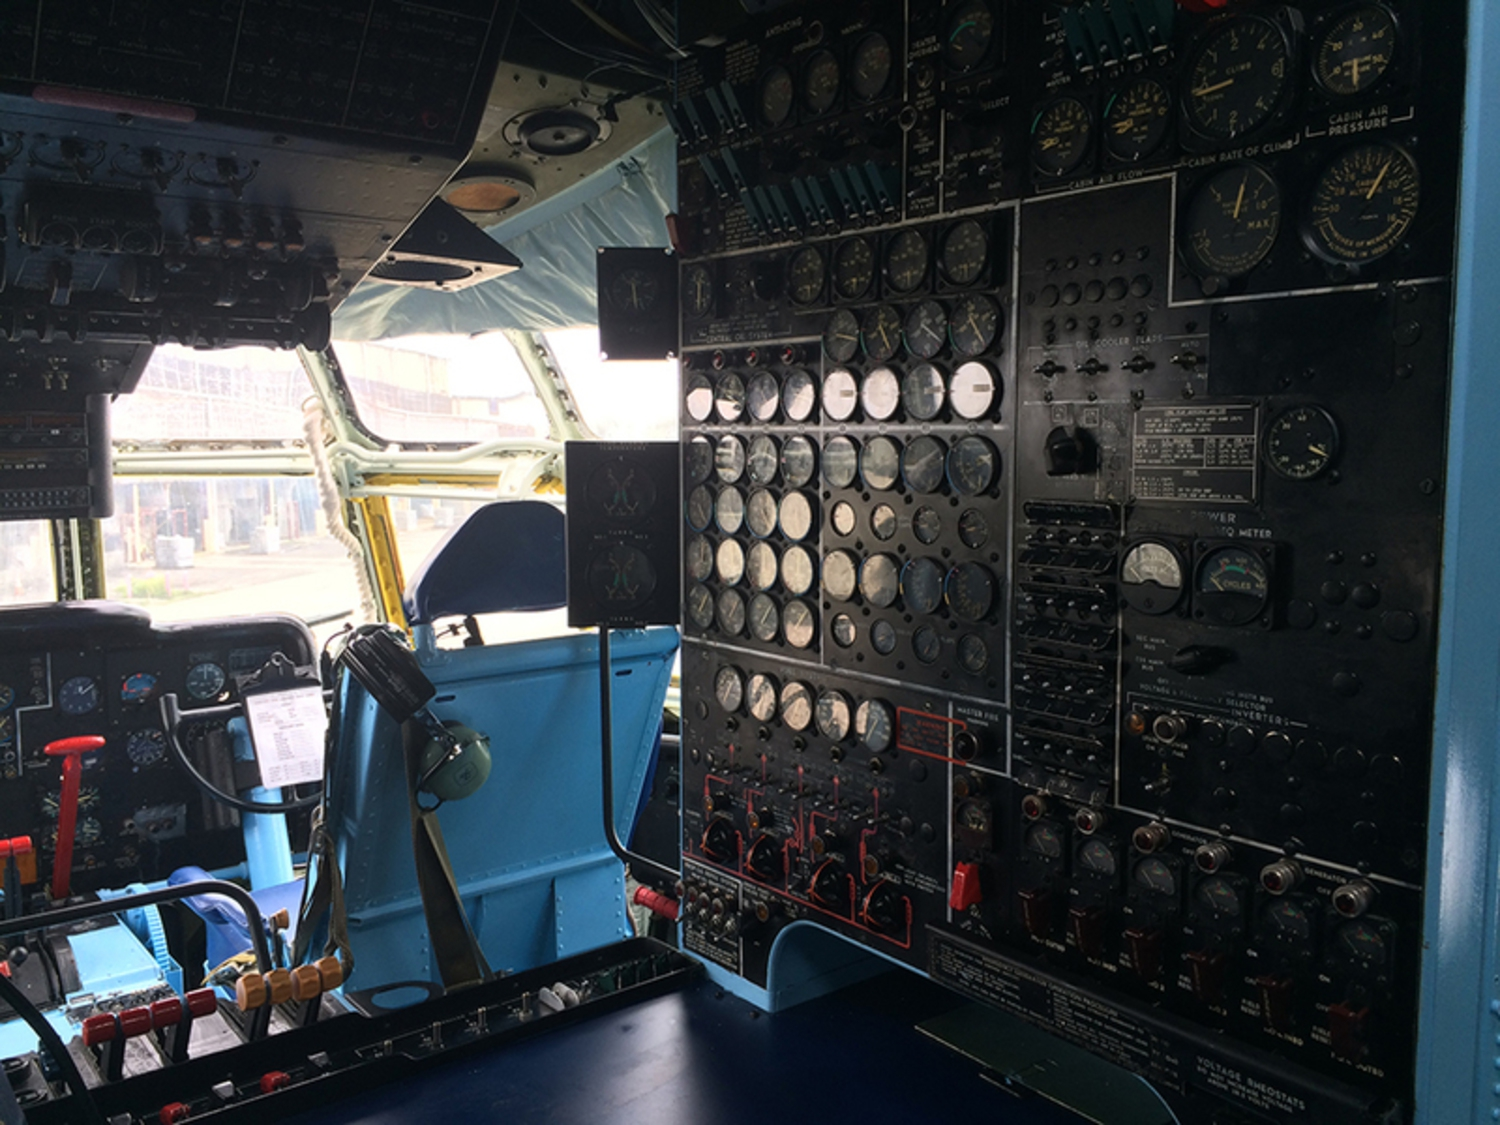 Inside the cockpit of the Boeing Stratofreighter on the day the volunteers tested the landing gear.